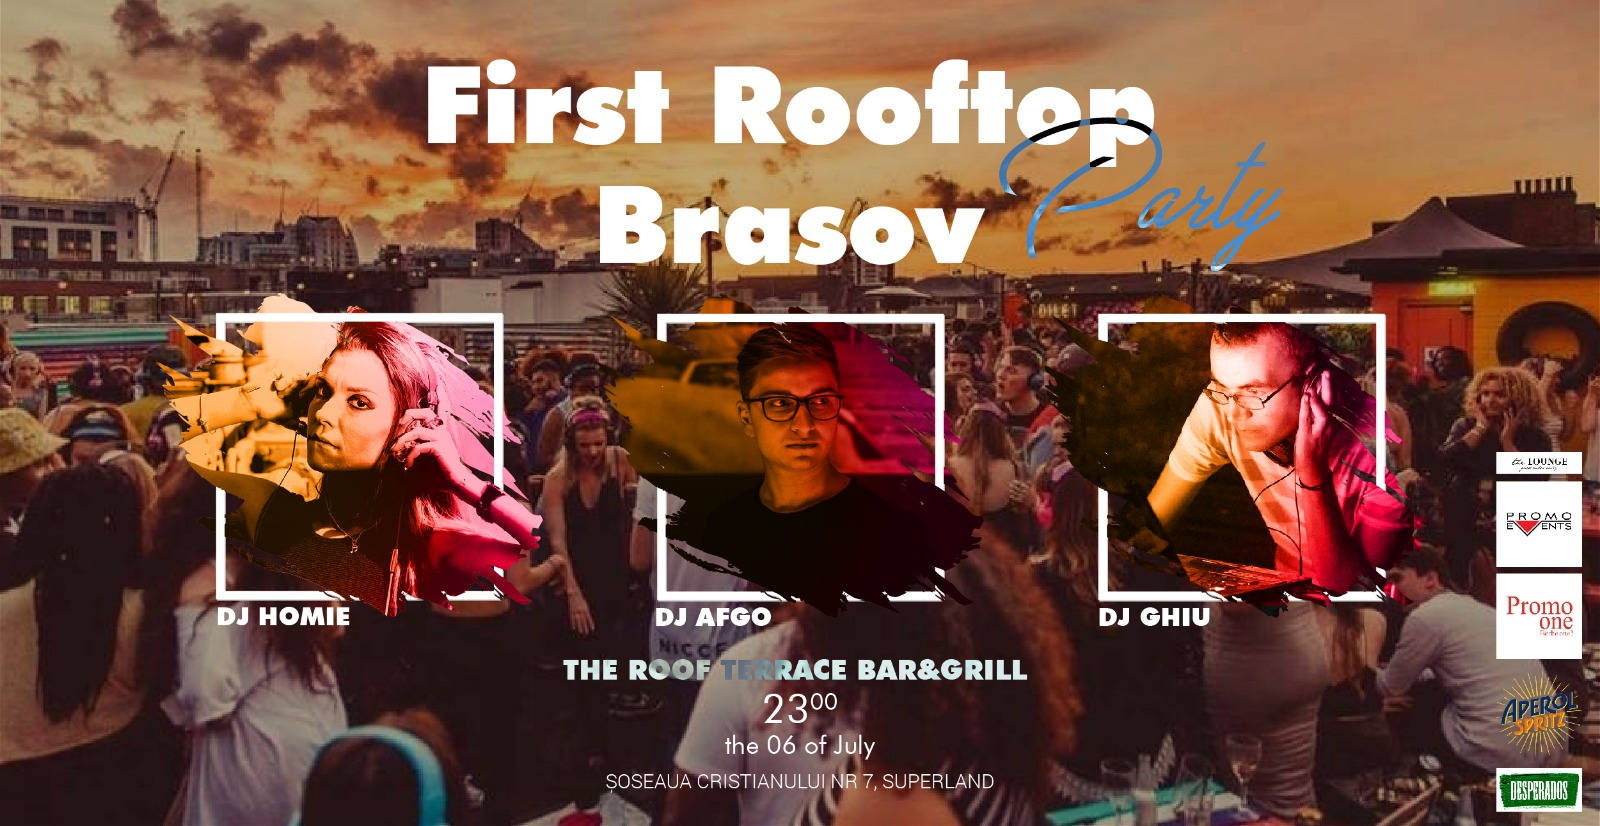 First Rooftop Party @ The Roof Terrace Bar&Grill, Brașov – 6 Iulie 2018